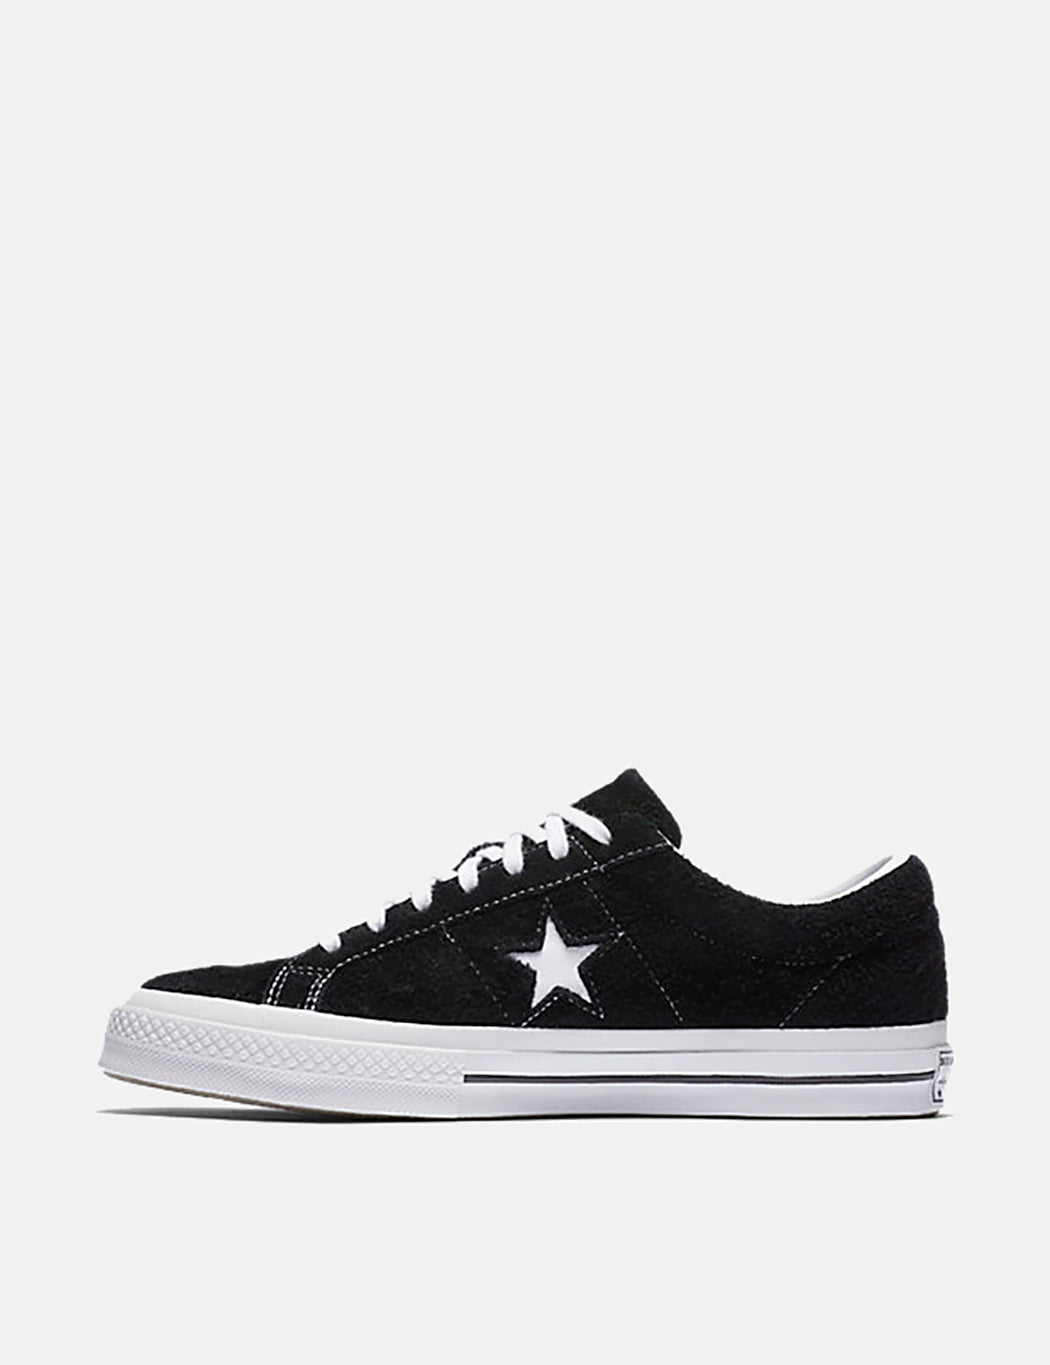 Converse One Star Ox Low Suede (158369C) - Black/White